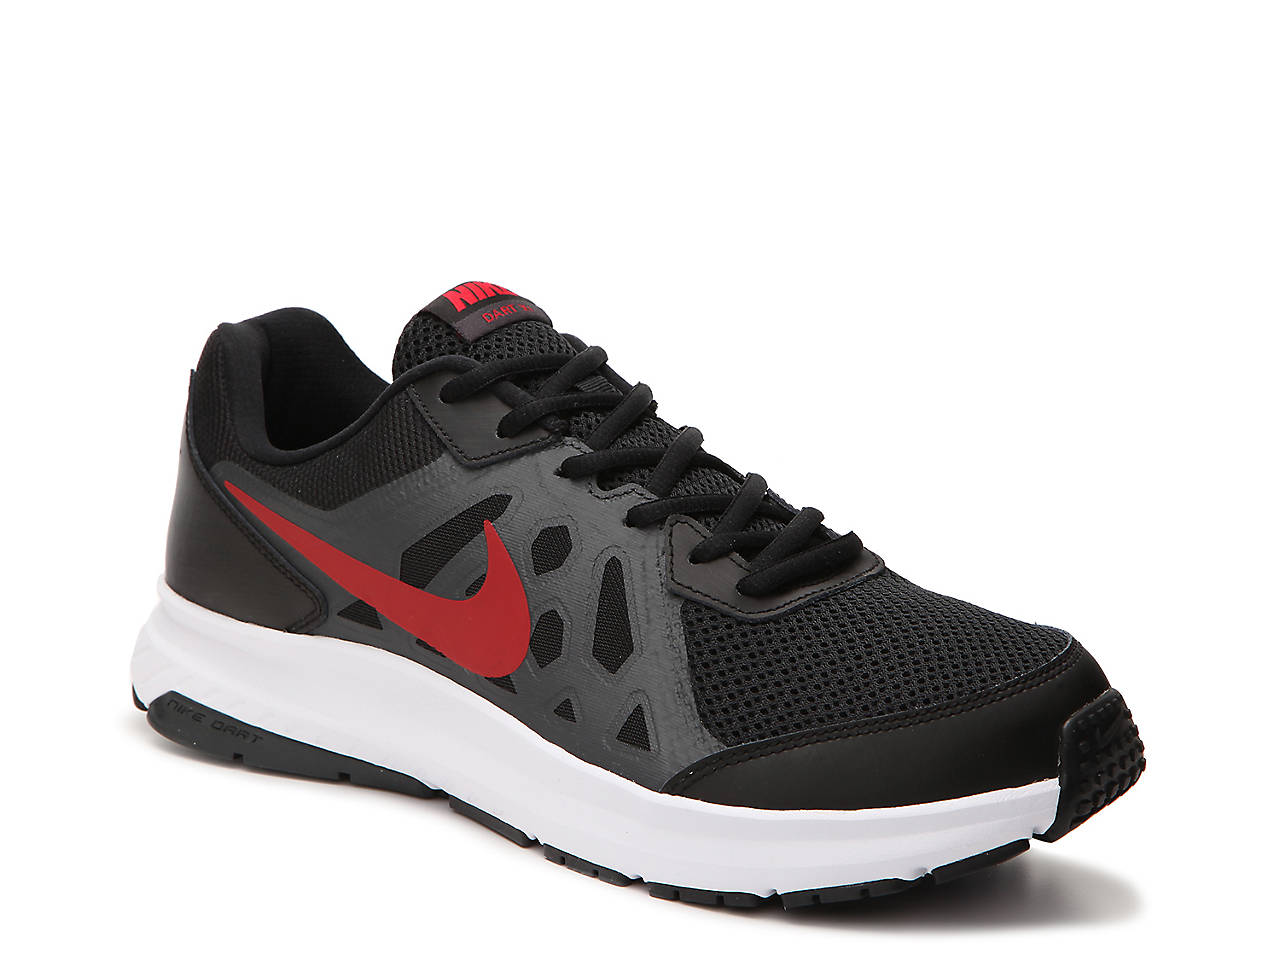 Nike. Dart 11 Lightweight Running Shoe - Men's